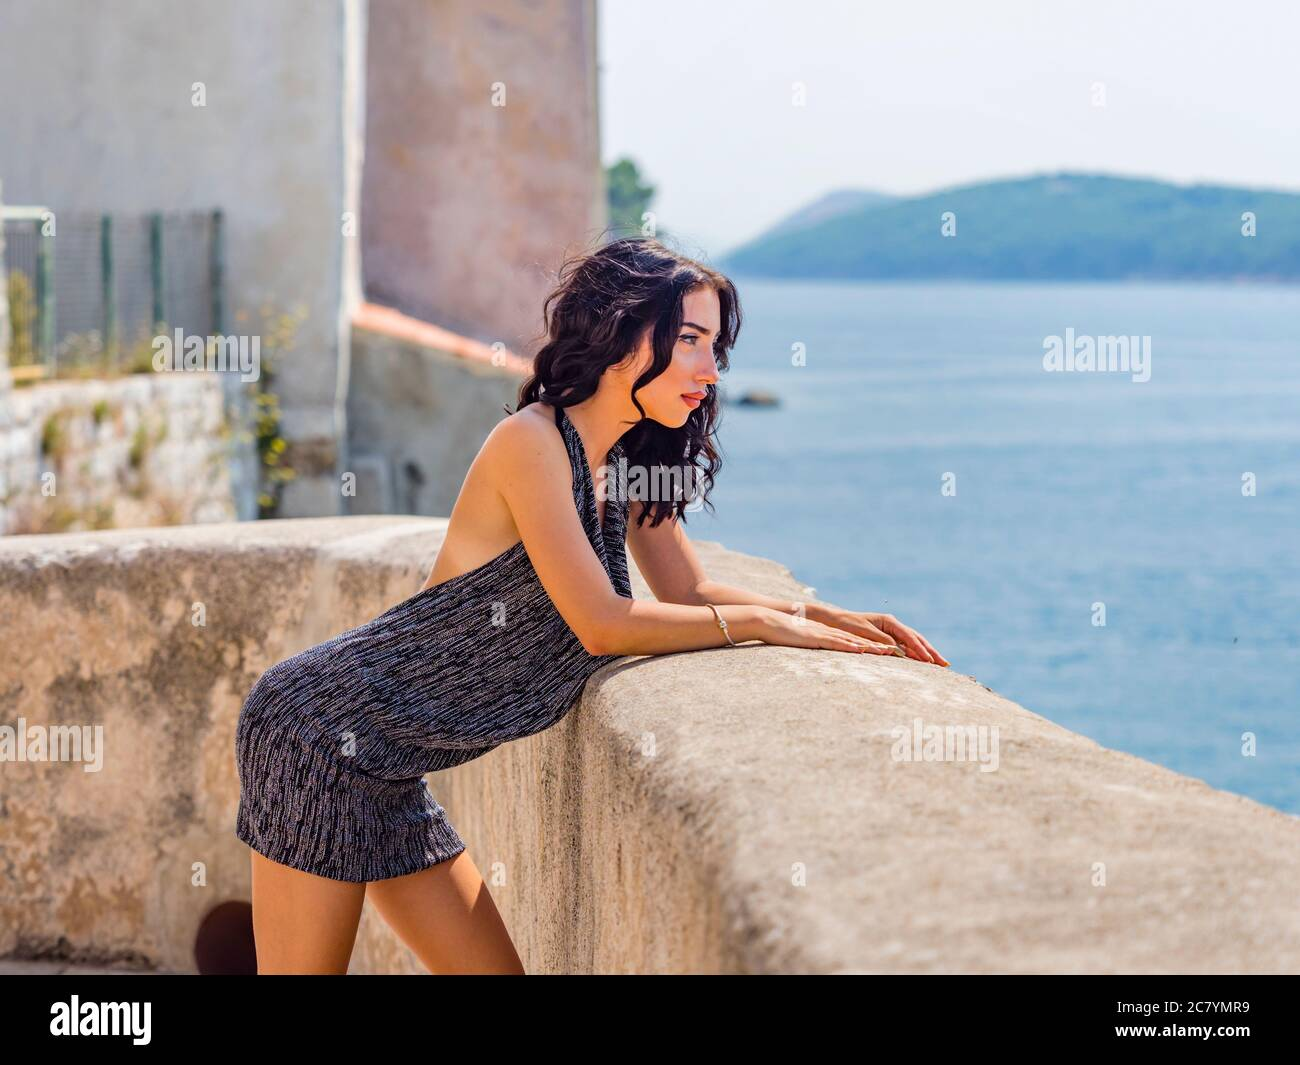 Teengirl inclined on wide stone wall of old medieval town ovelooking sea serious looking away profile sideview side-view bit sexy Stock Photo